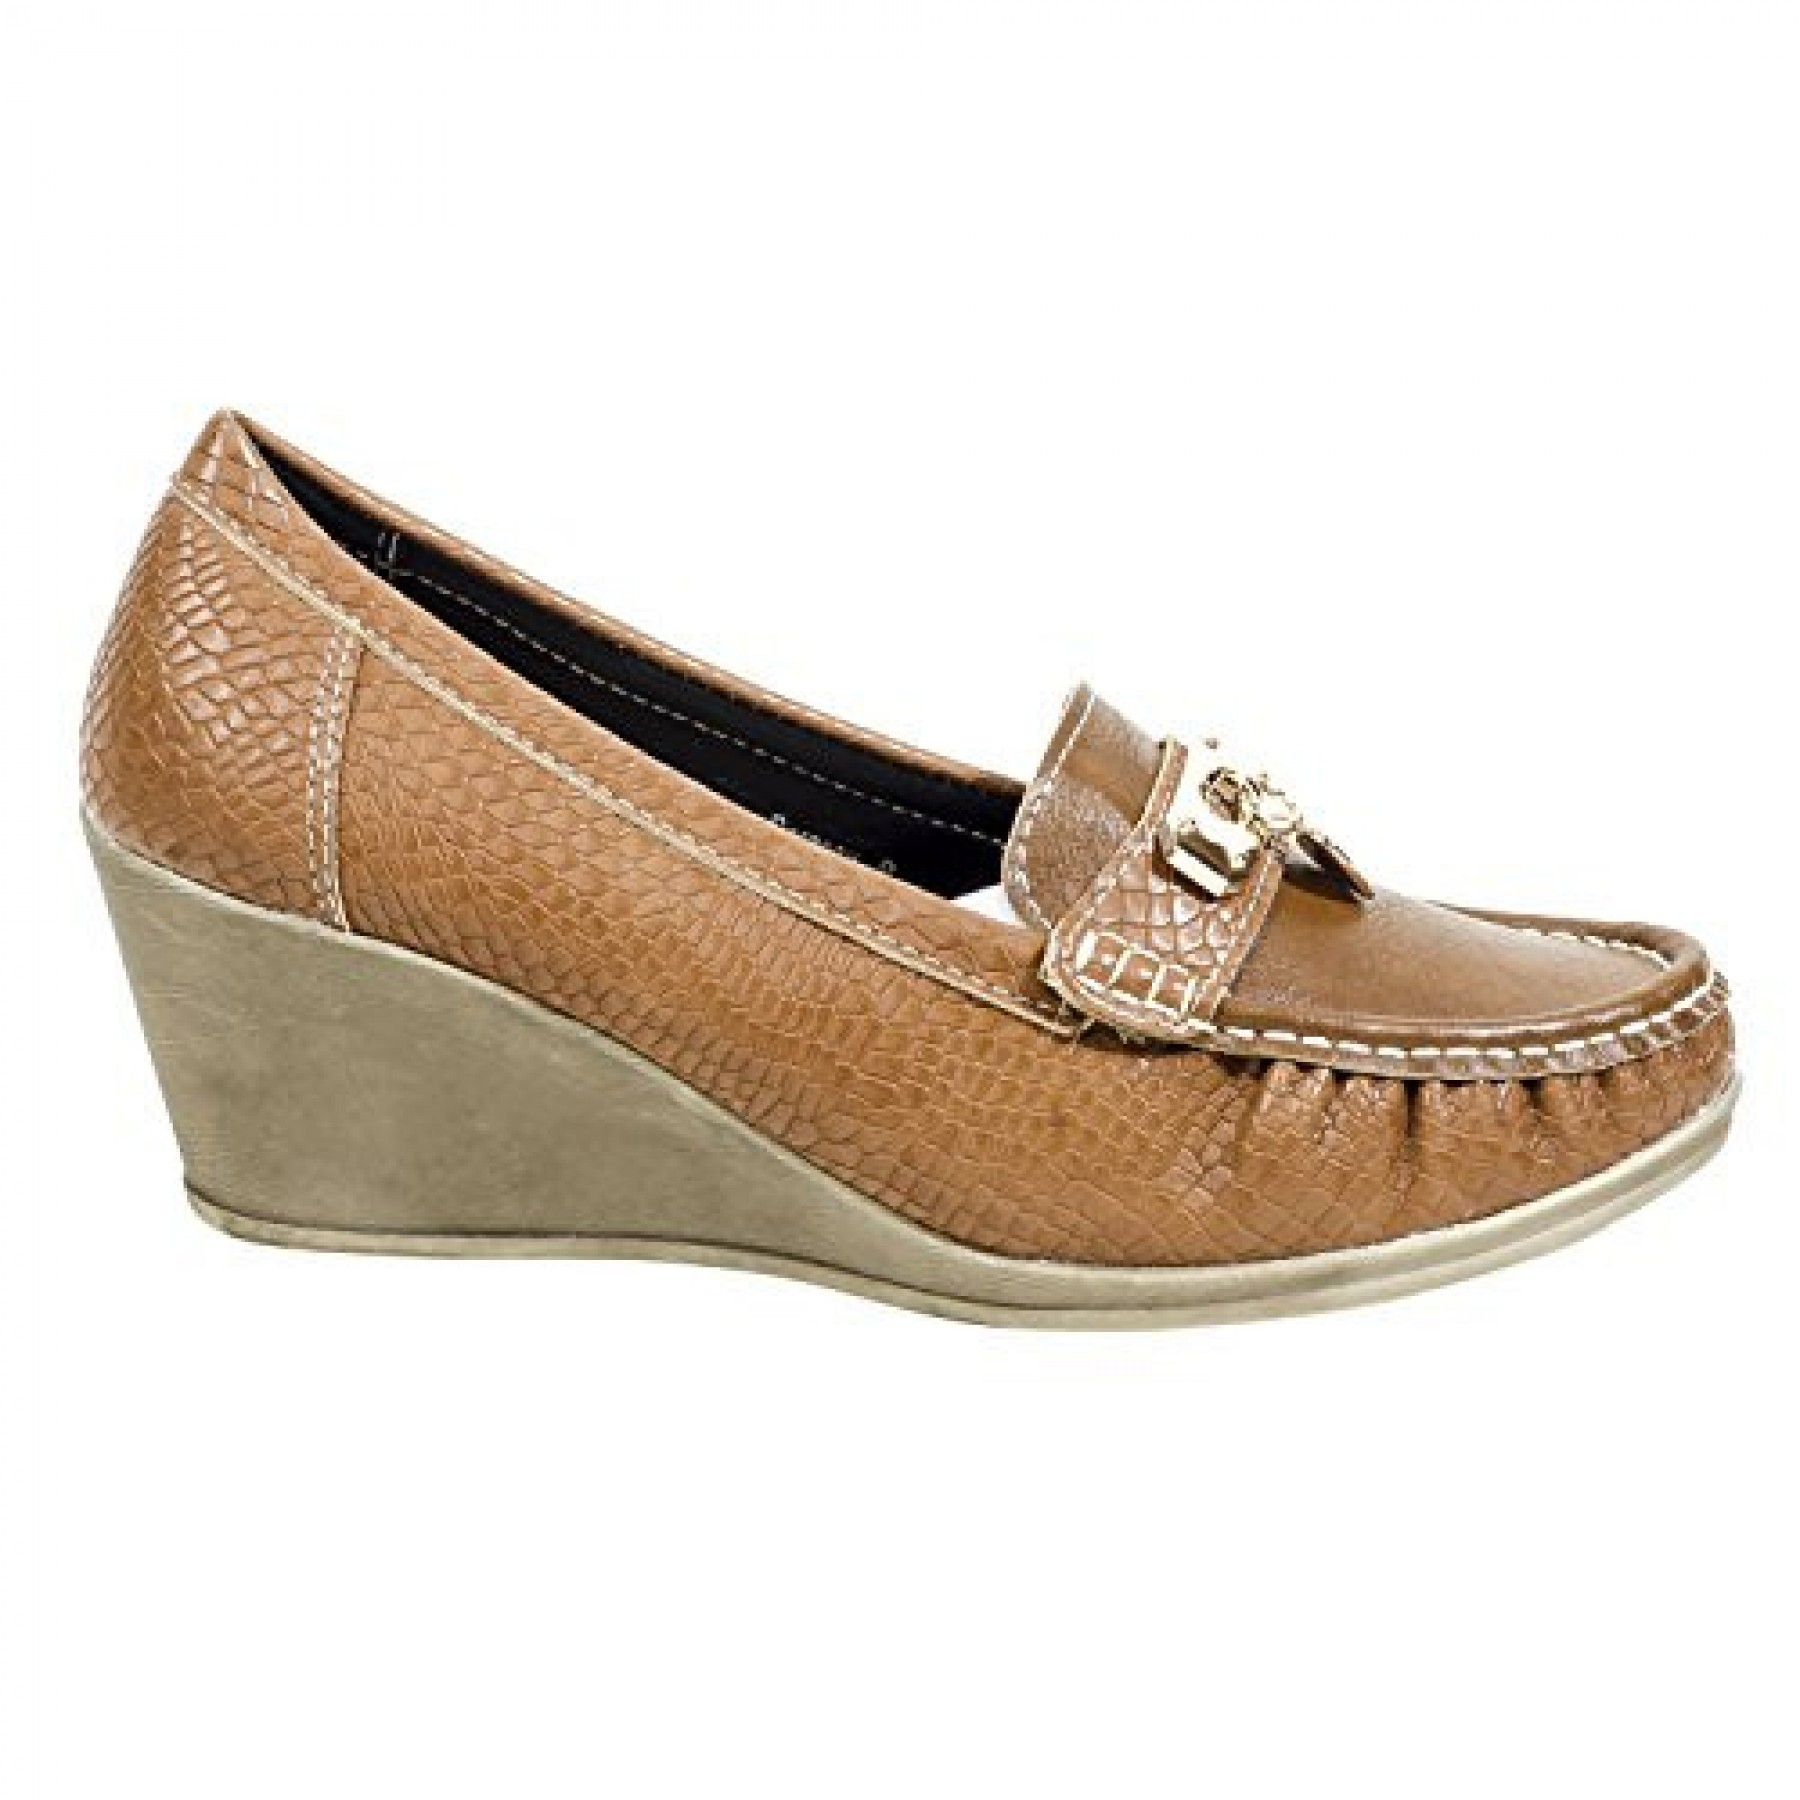 Women's Cognac Manmade Dorsaay Loafer Wedge with Gold-Tone Charm